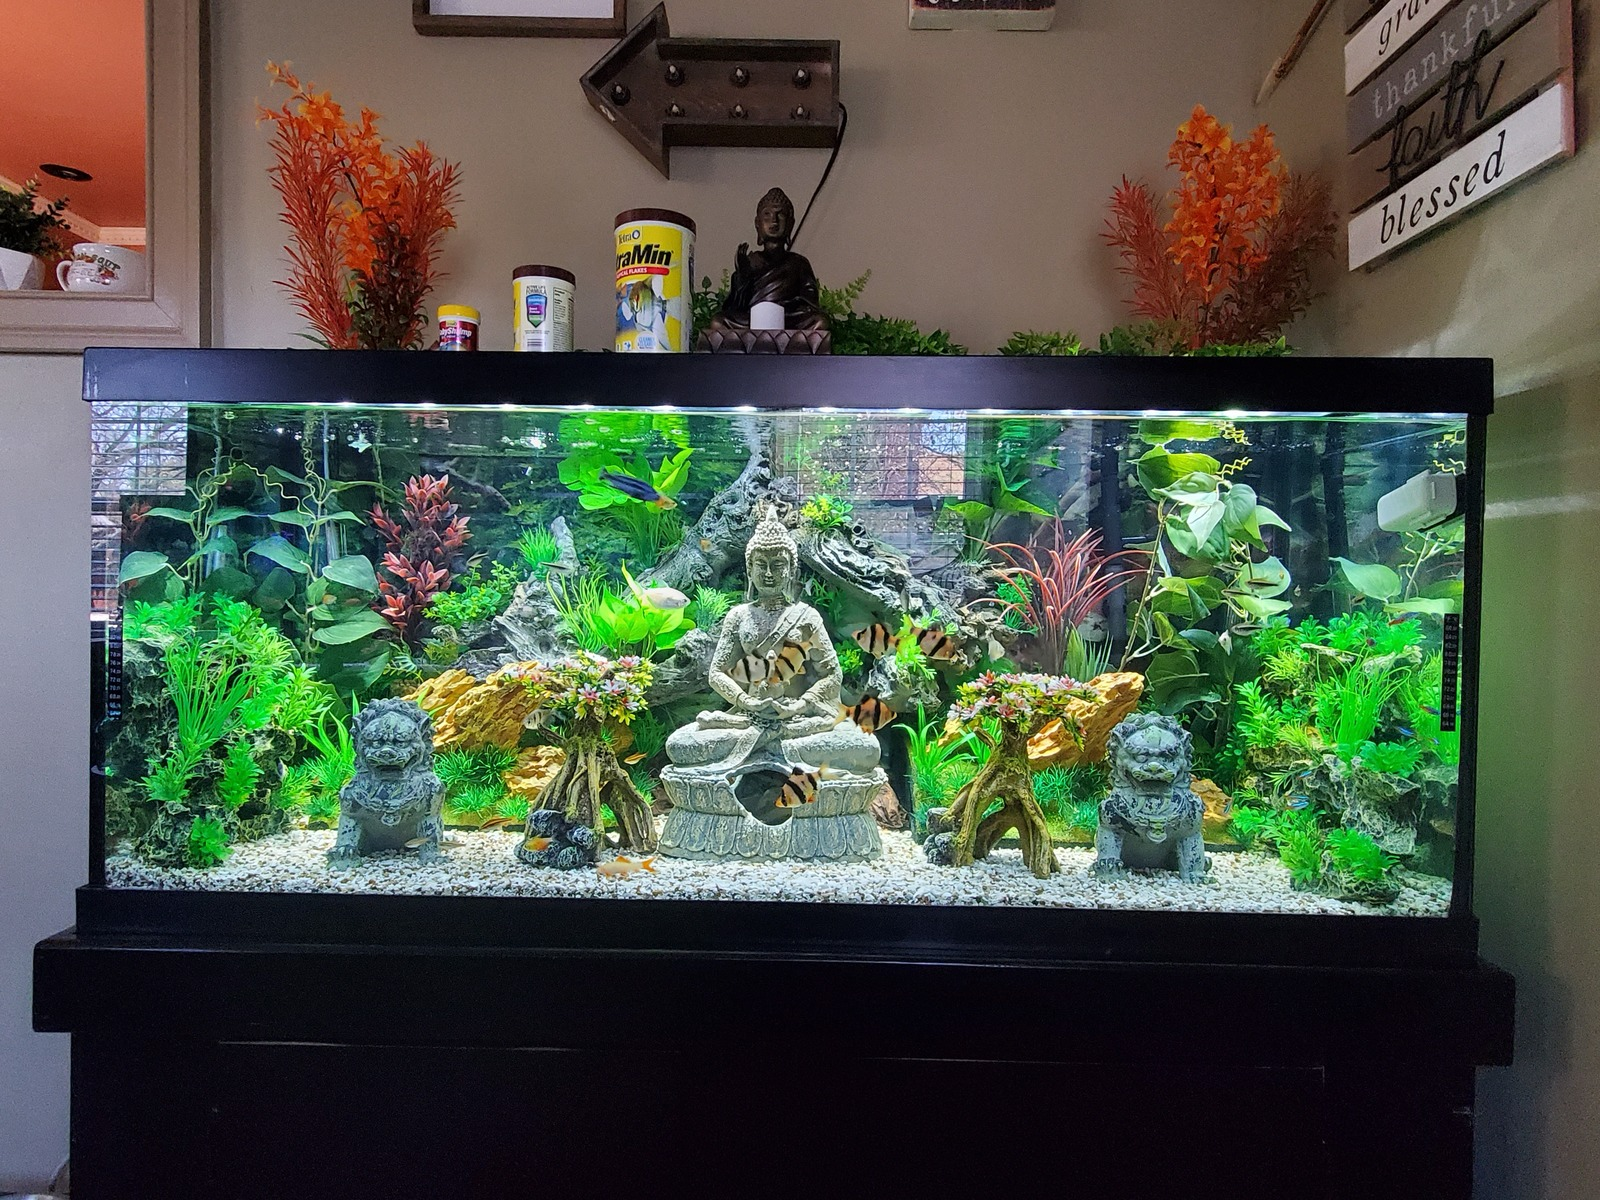 75 gallon  | by Moses Zayas